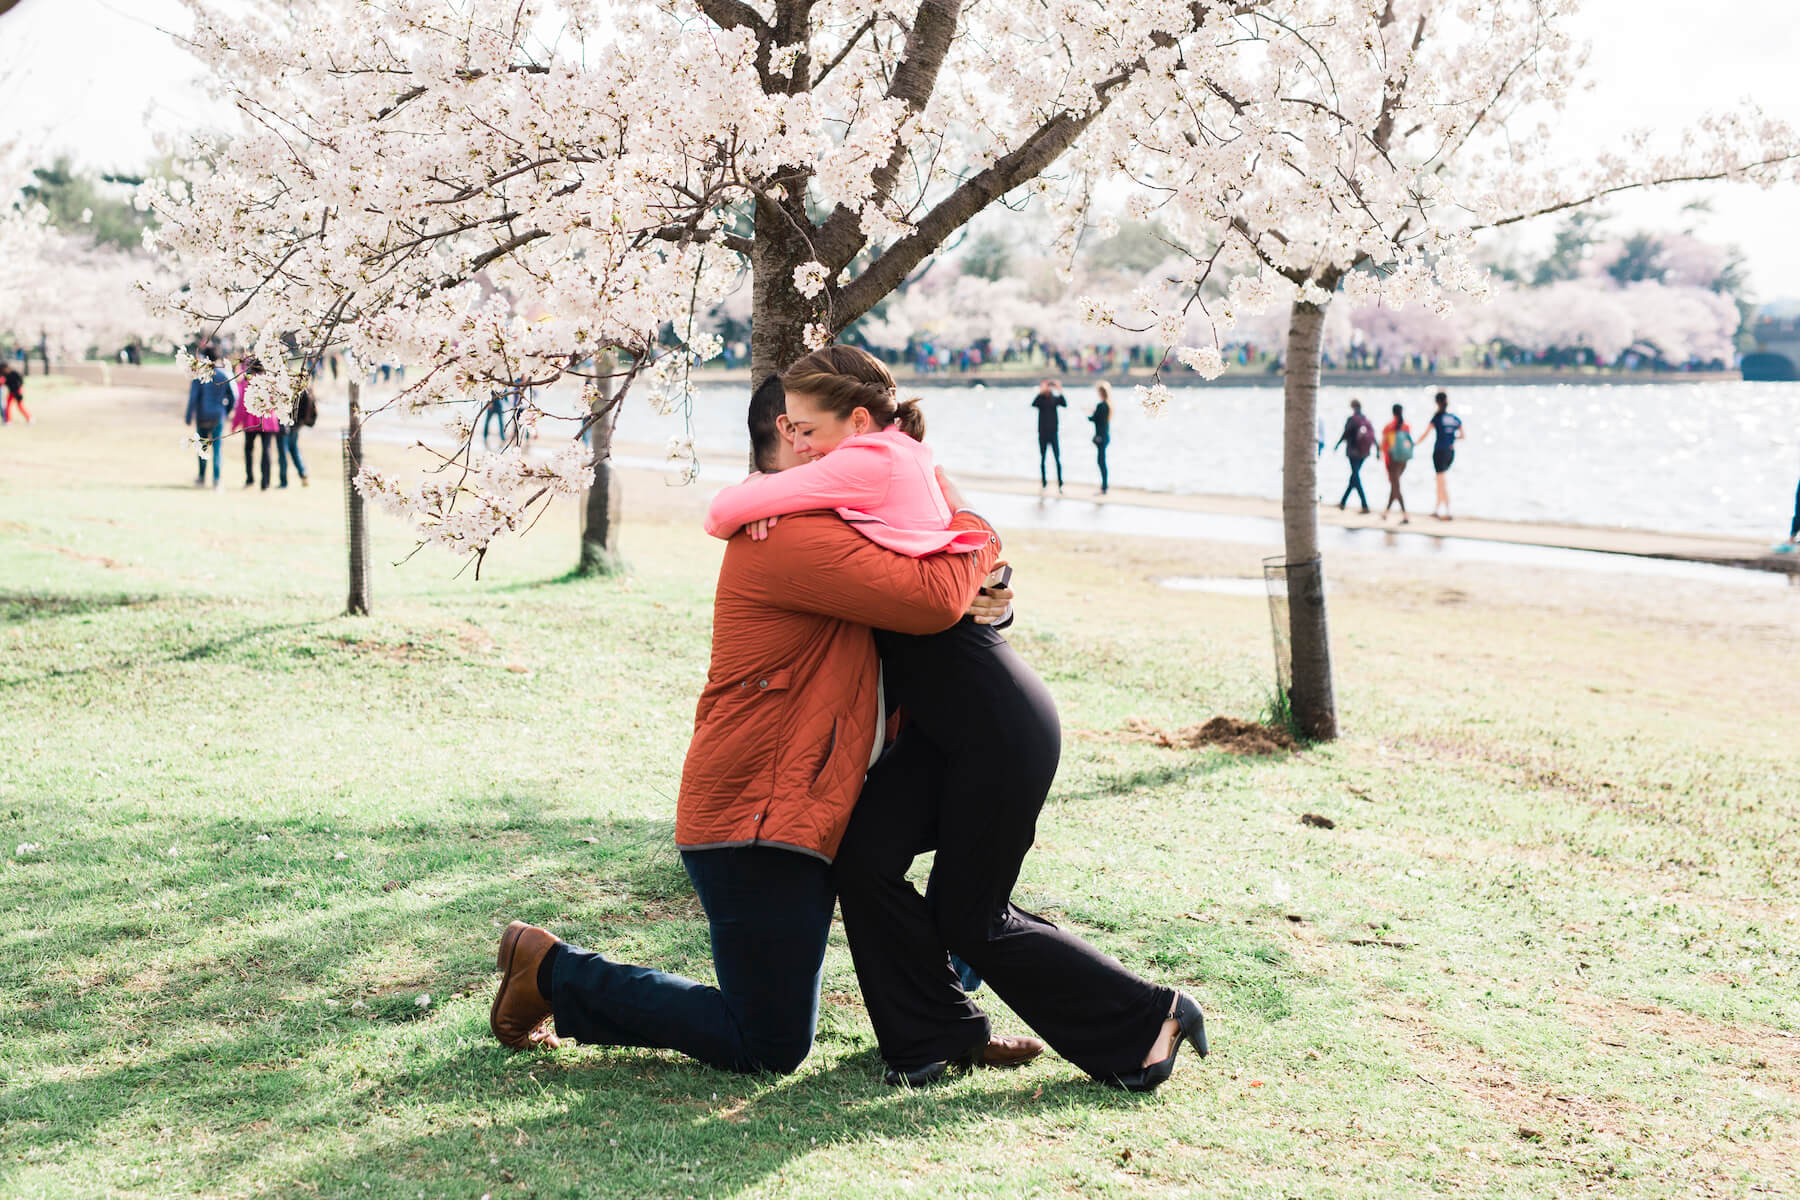 Couple hugging under cherry blossom trees in a park in Washington, DC, USA